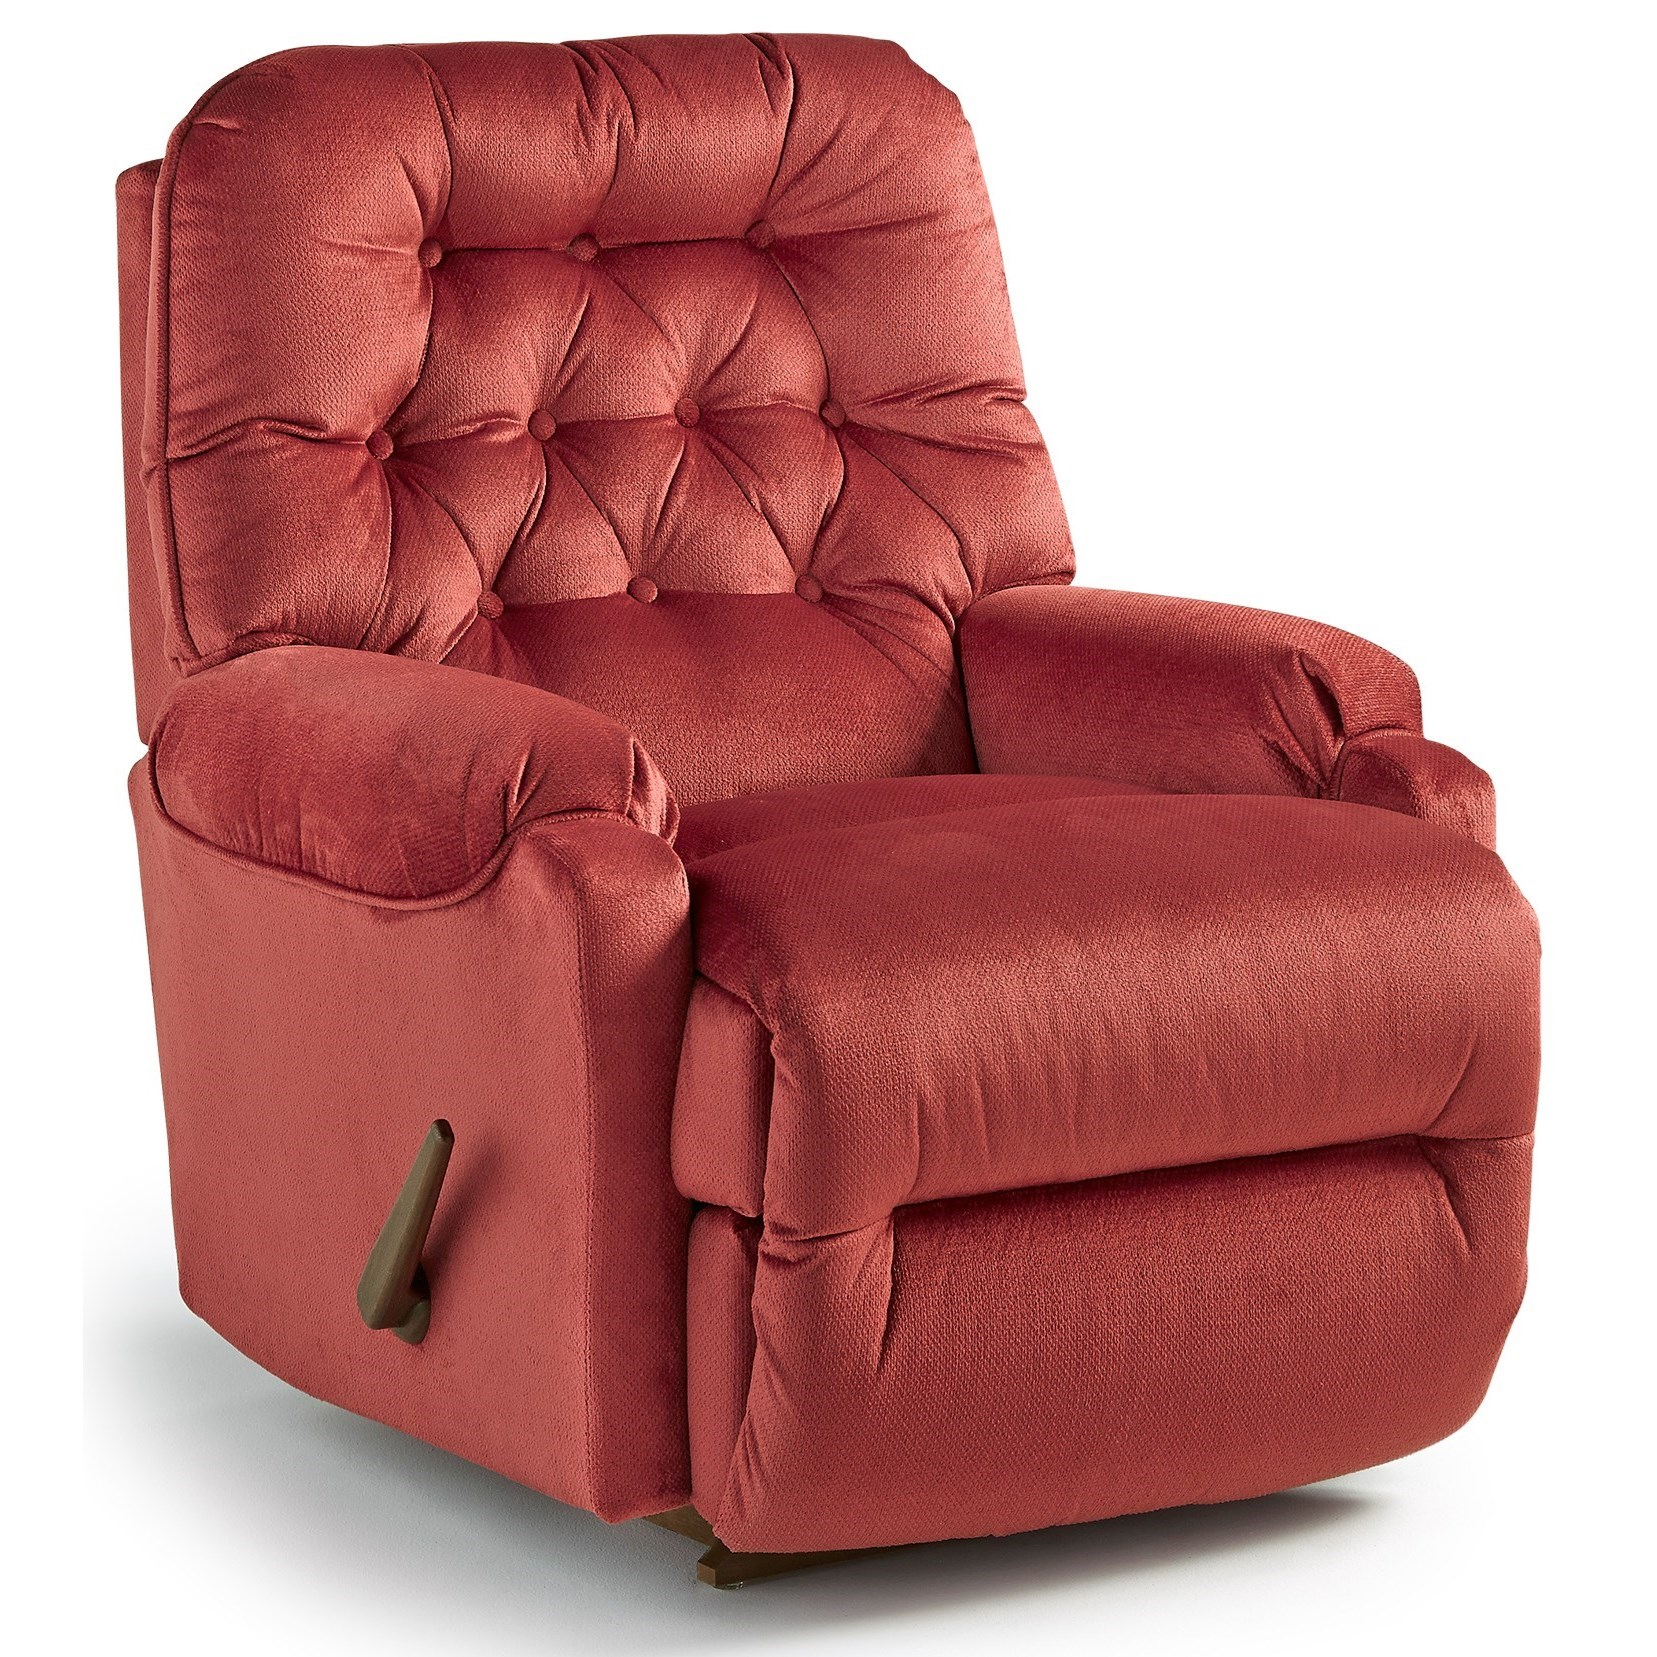 Best Home Furnishings Recliners Petite 9aw29 Brena